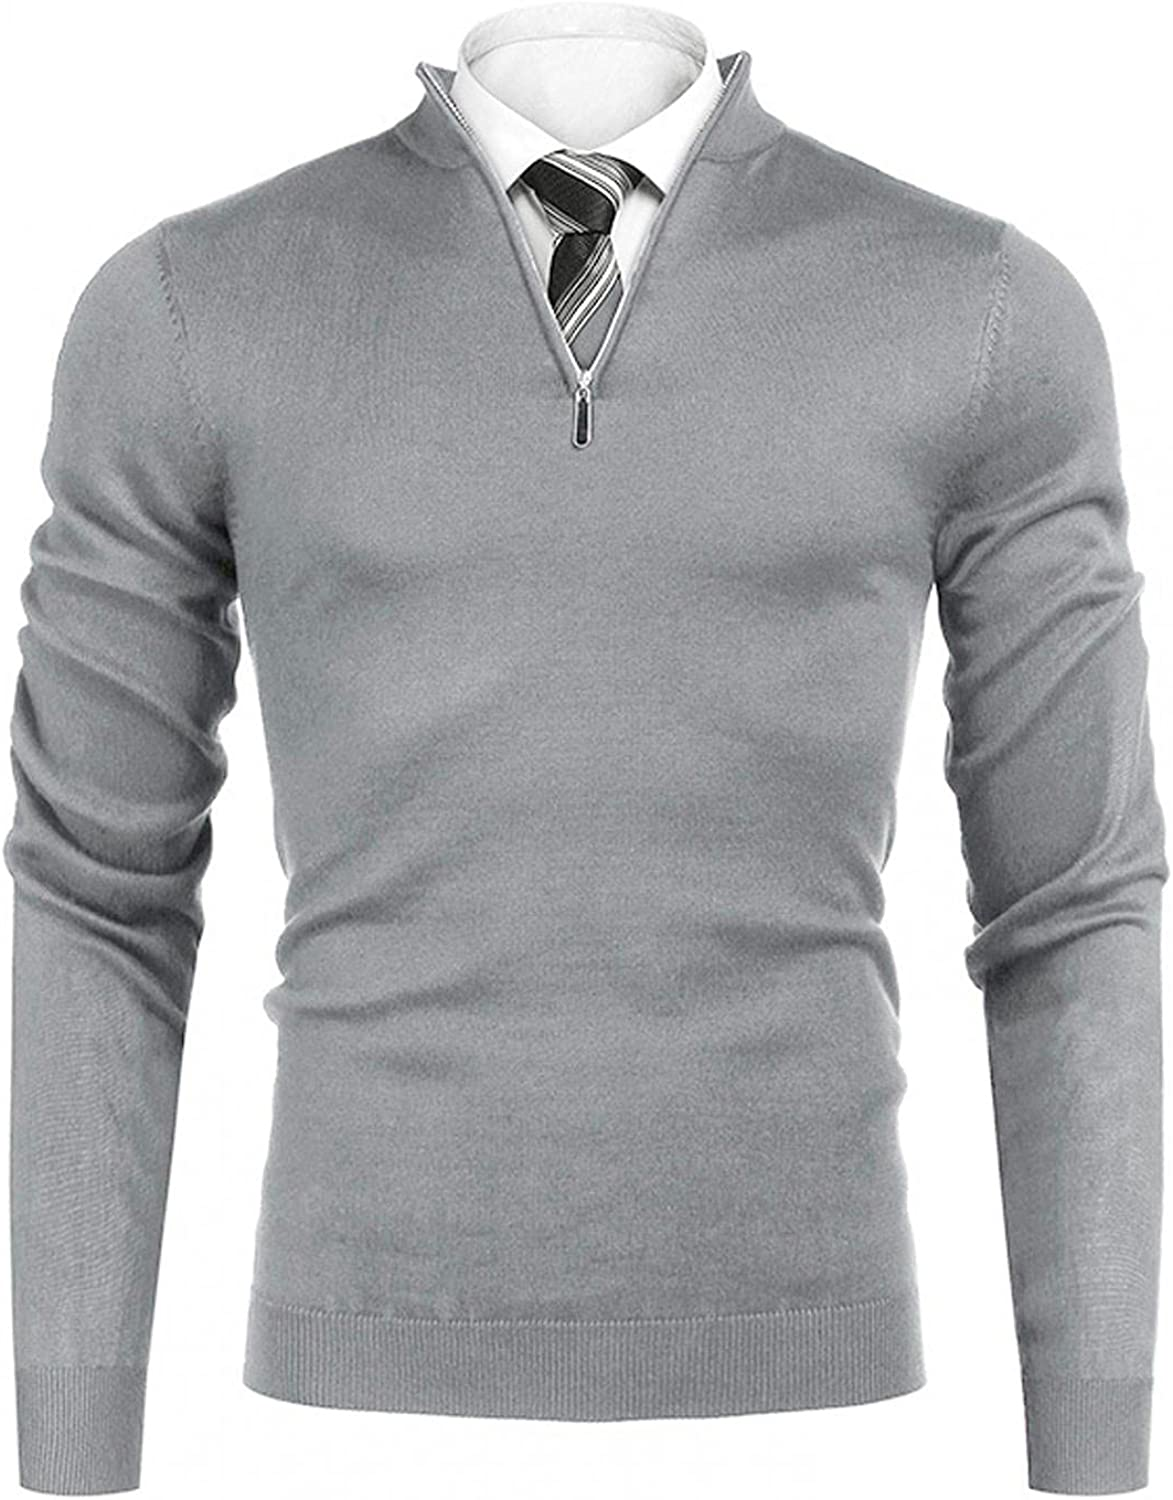 WoCoo Men's Knitted Sweaters Long Sleeve Turtleneck Quarter Zip Sweatshirts Pullover Lightweight Casual Slim Fit Polo Shirts